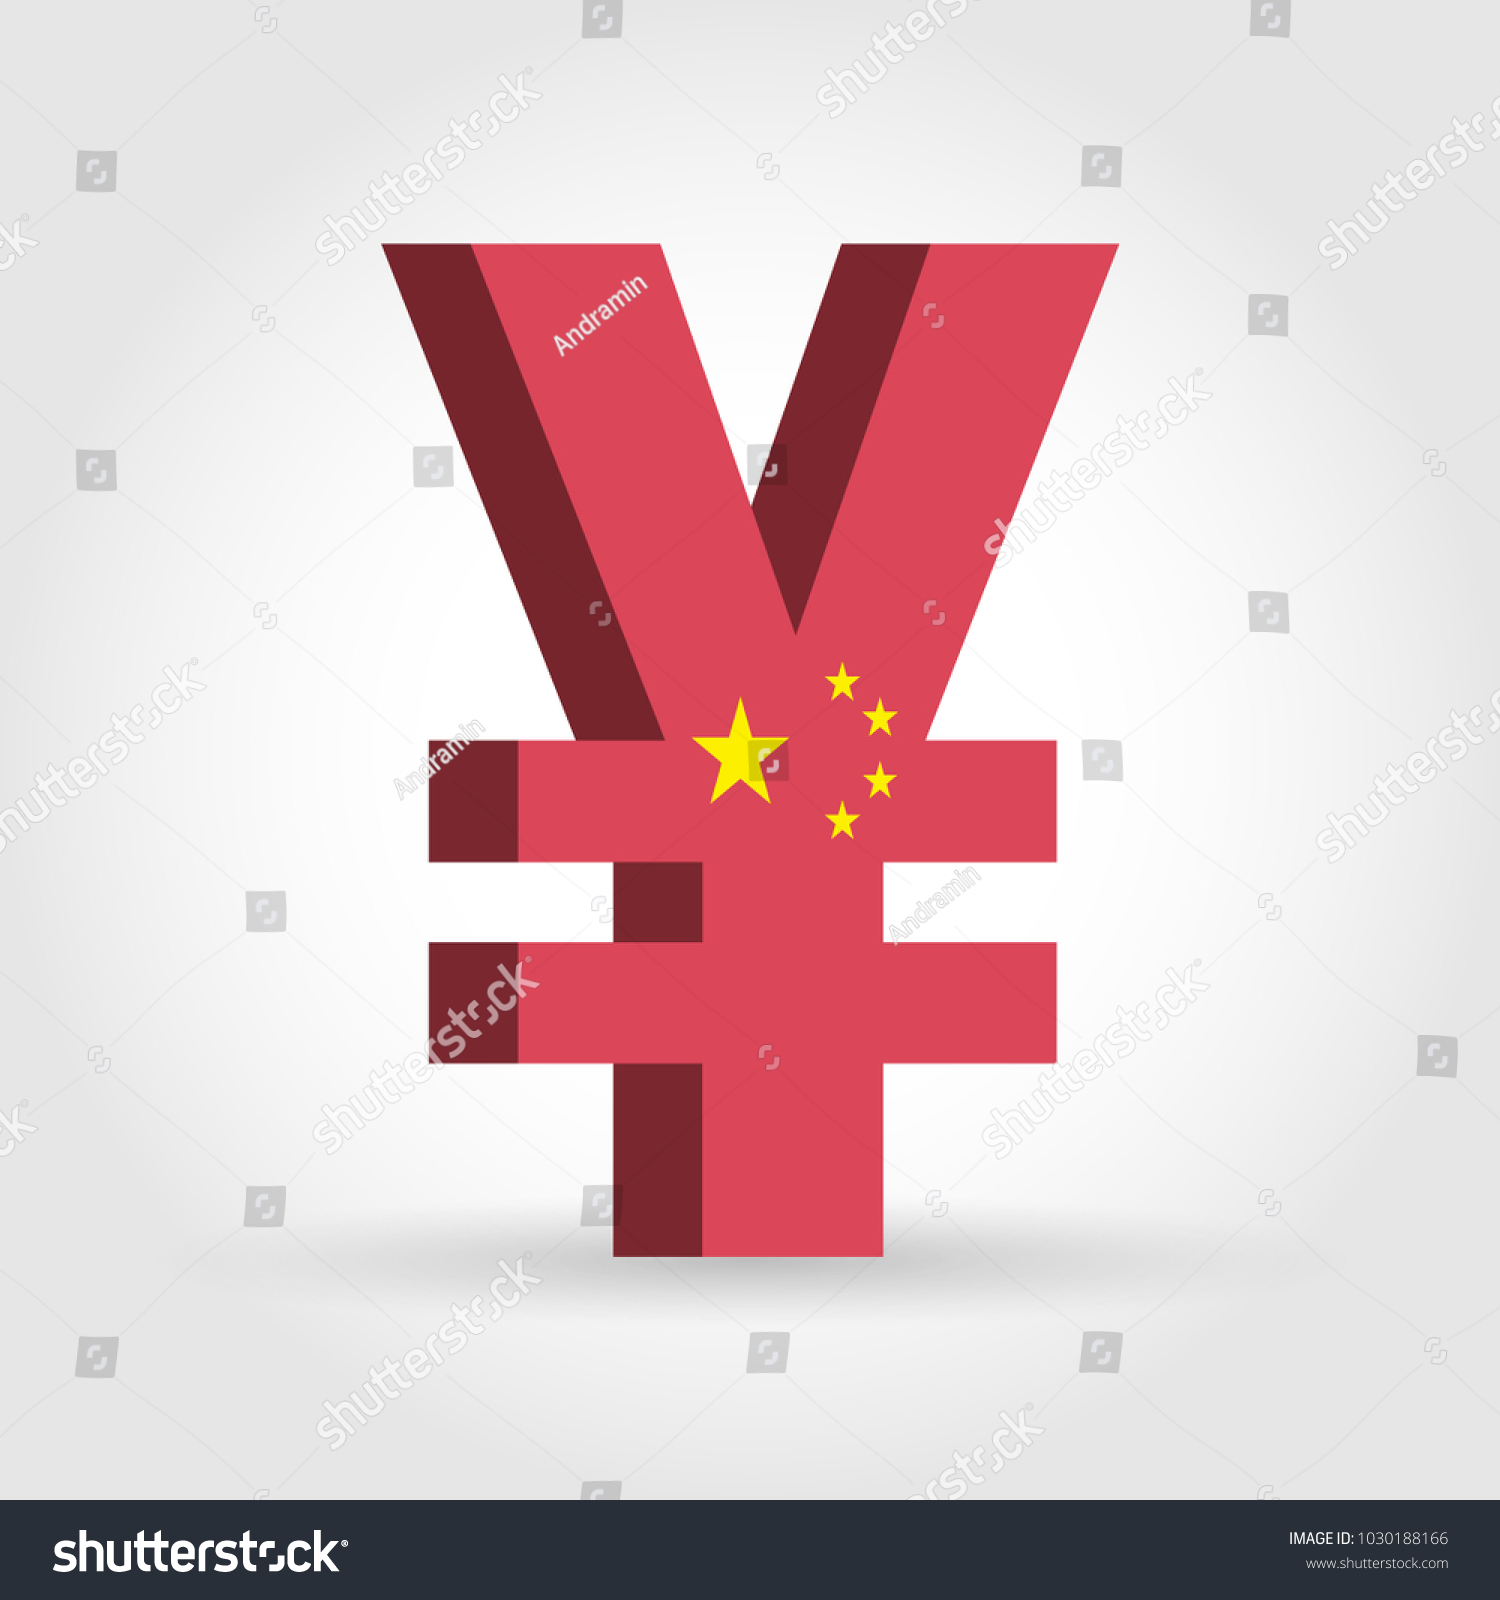 Currency ticker symbols images symbol and sign ideas currency symbol rmb image collections symbol and sign ideas china yuan renminbi cny currency symbol stock biocorpaavc